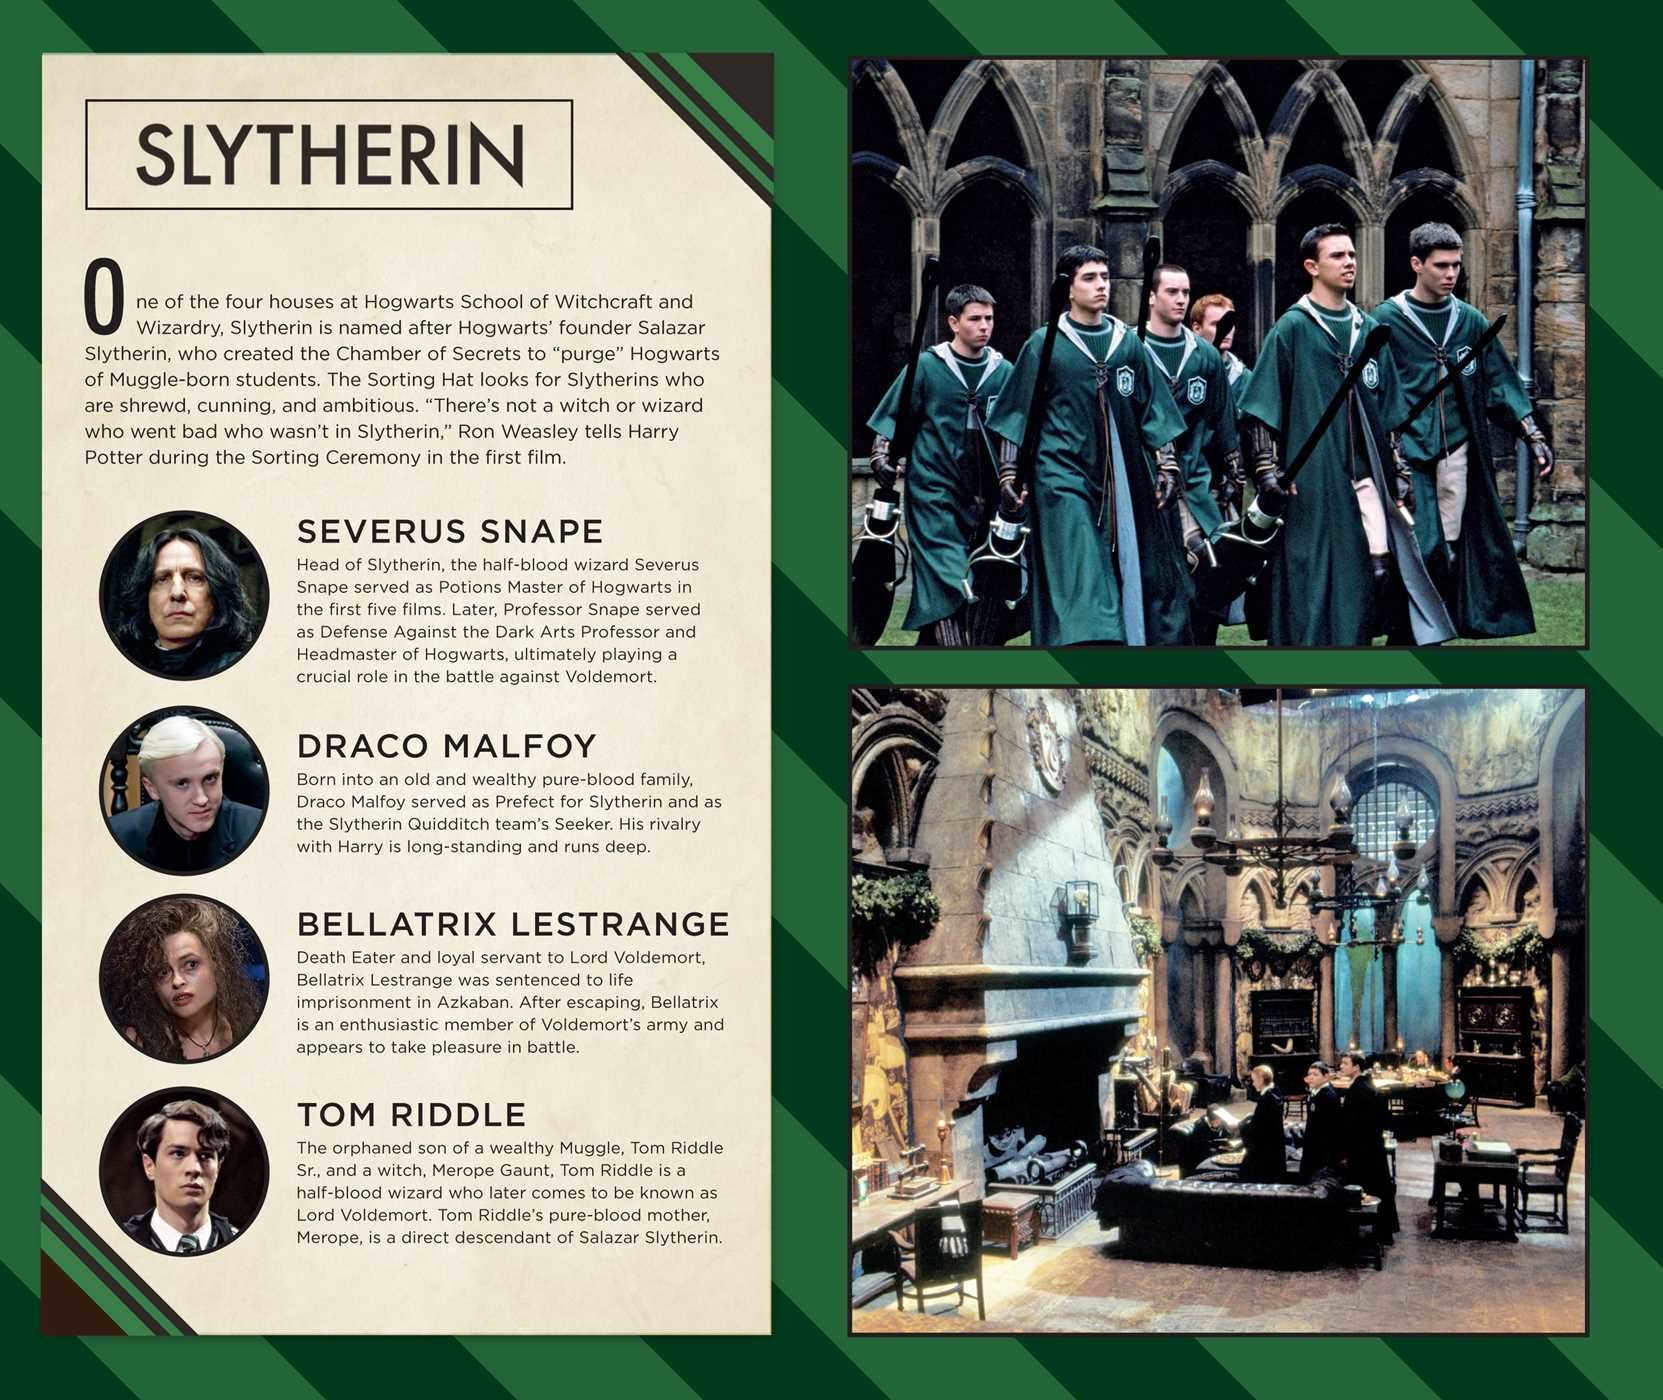 Harry potter slytherin hardcover ruled journal 9781683833185.in02